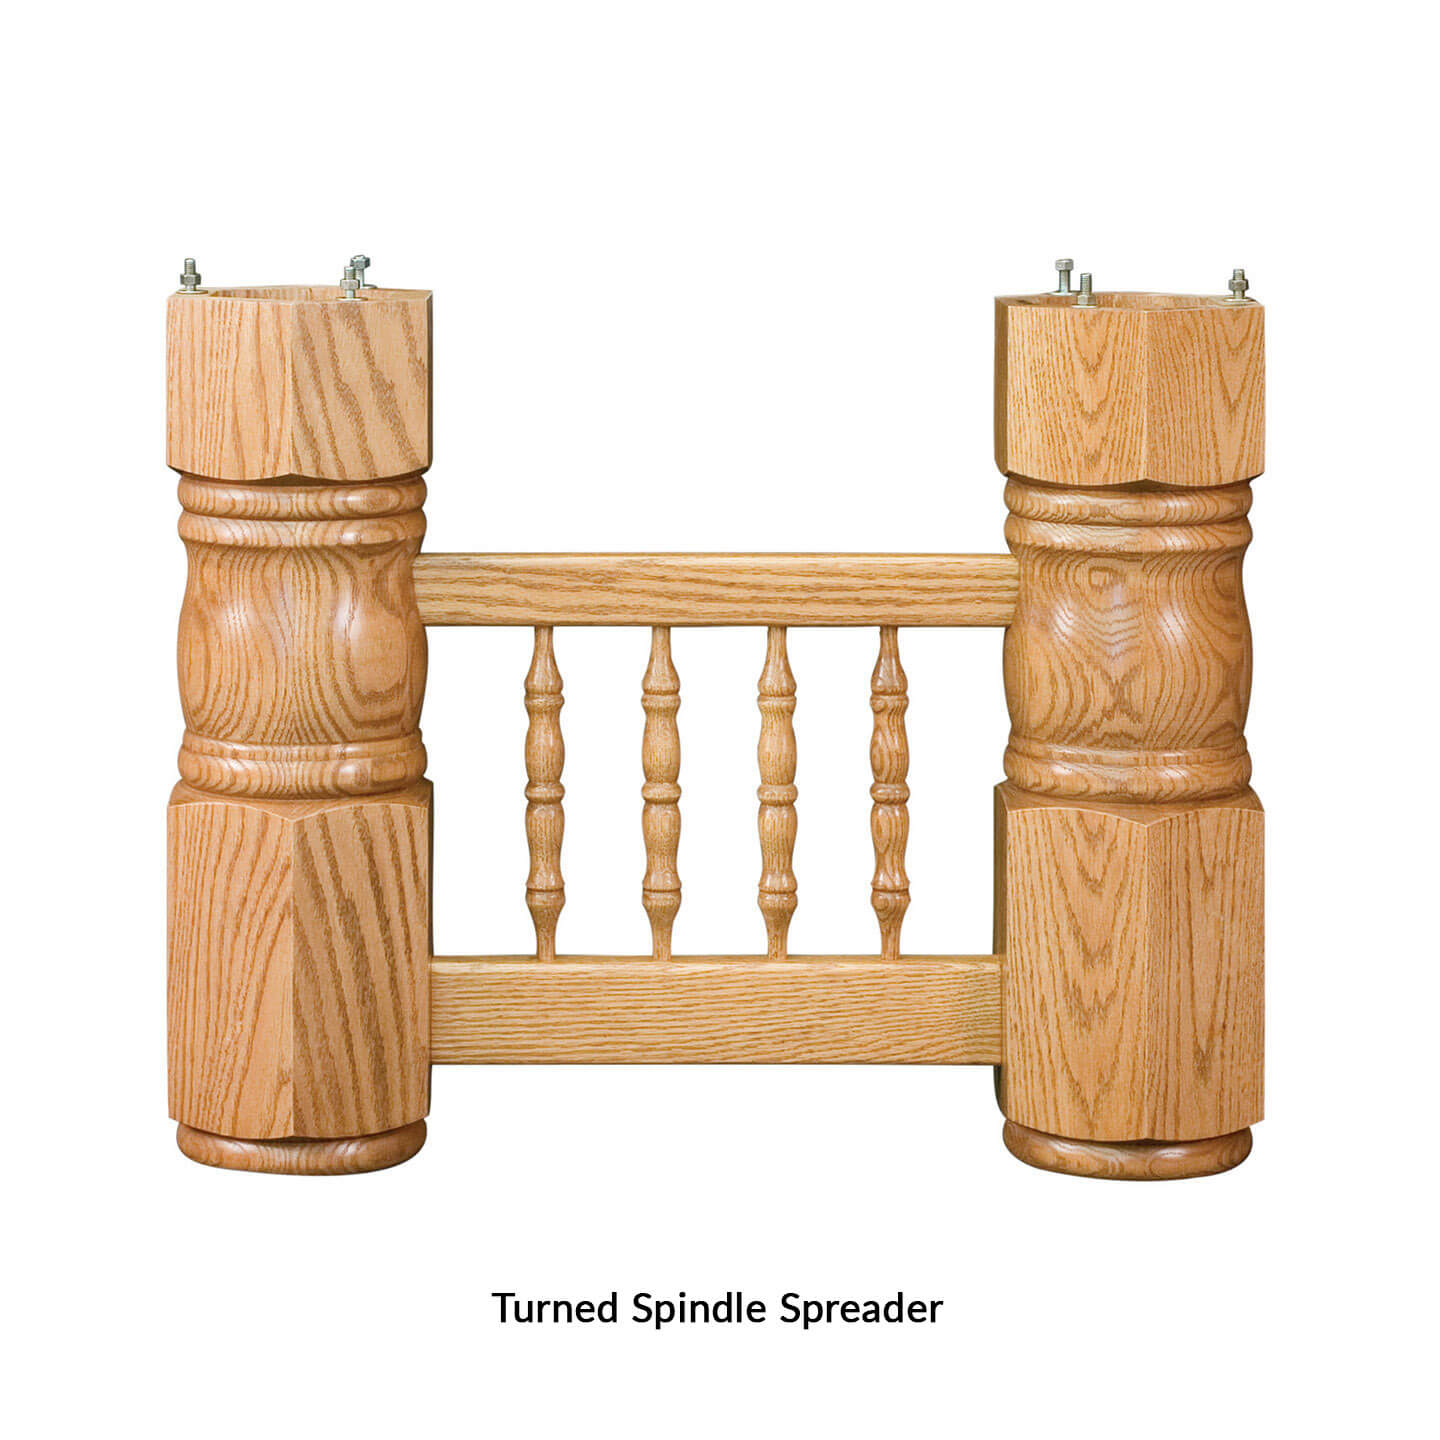 7.2-turned-spindle-spreader.jpg